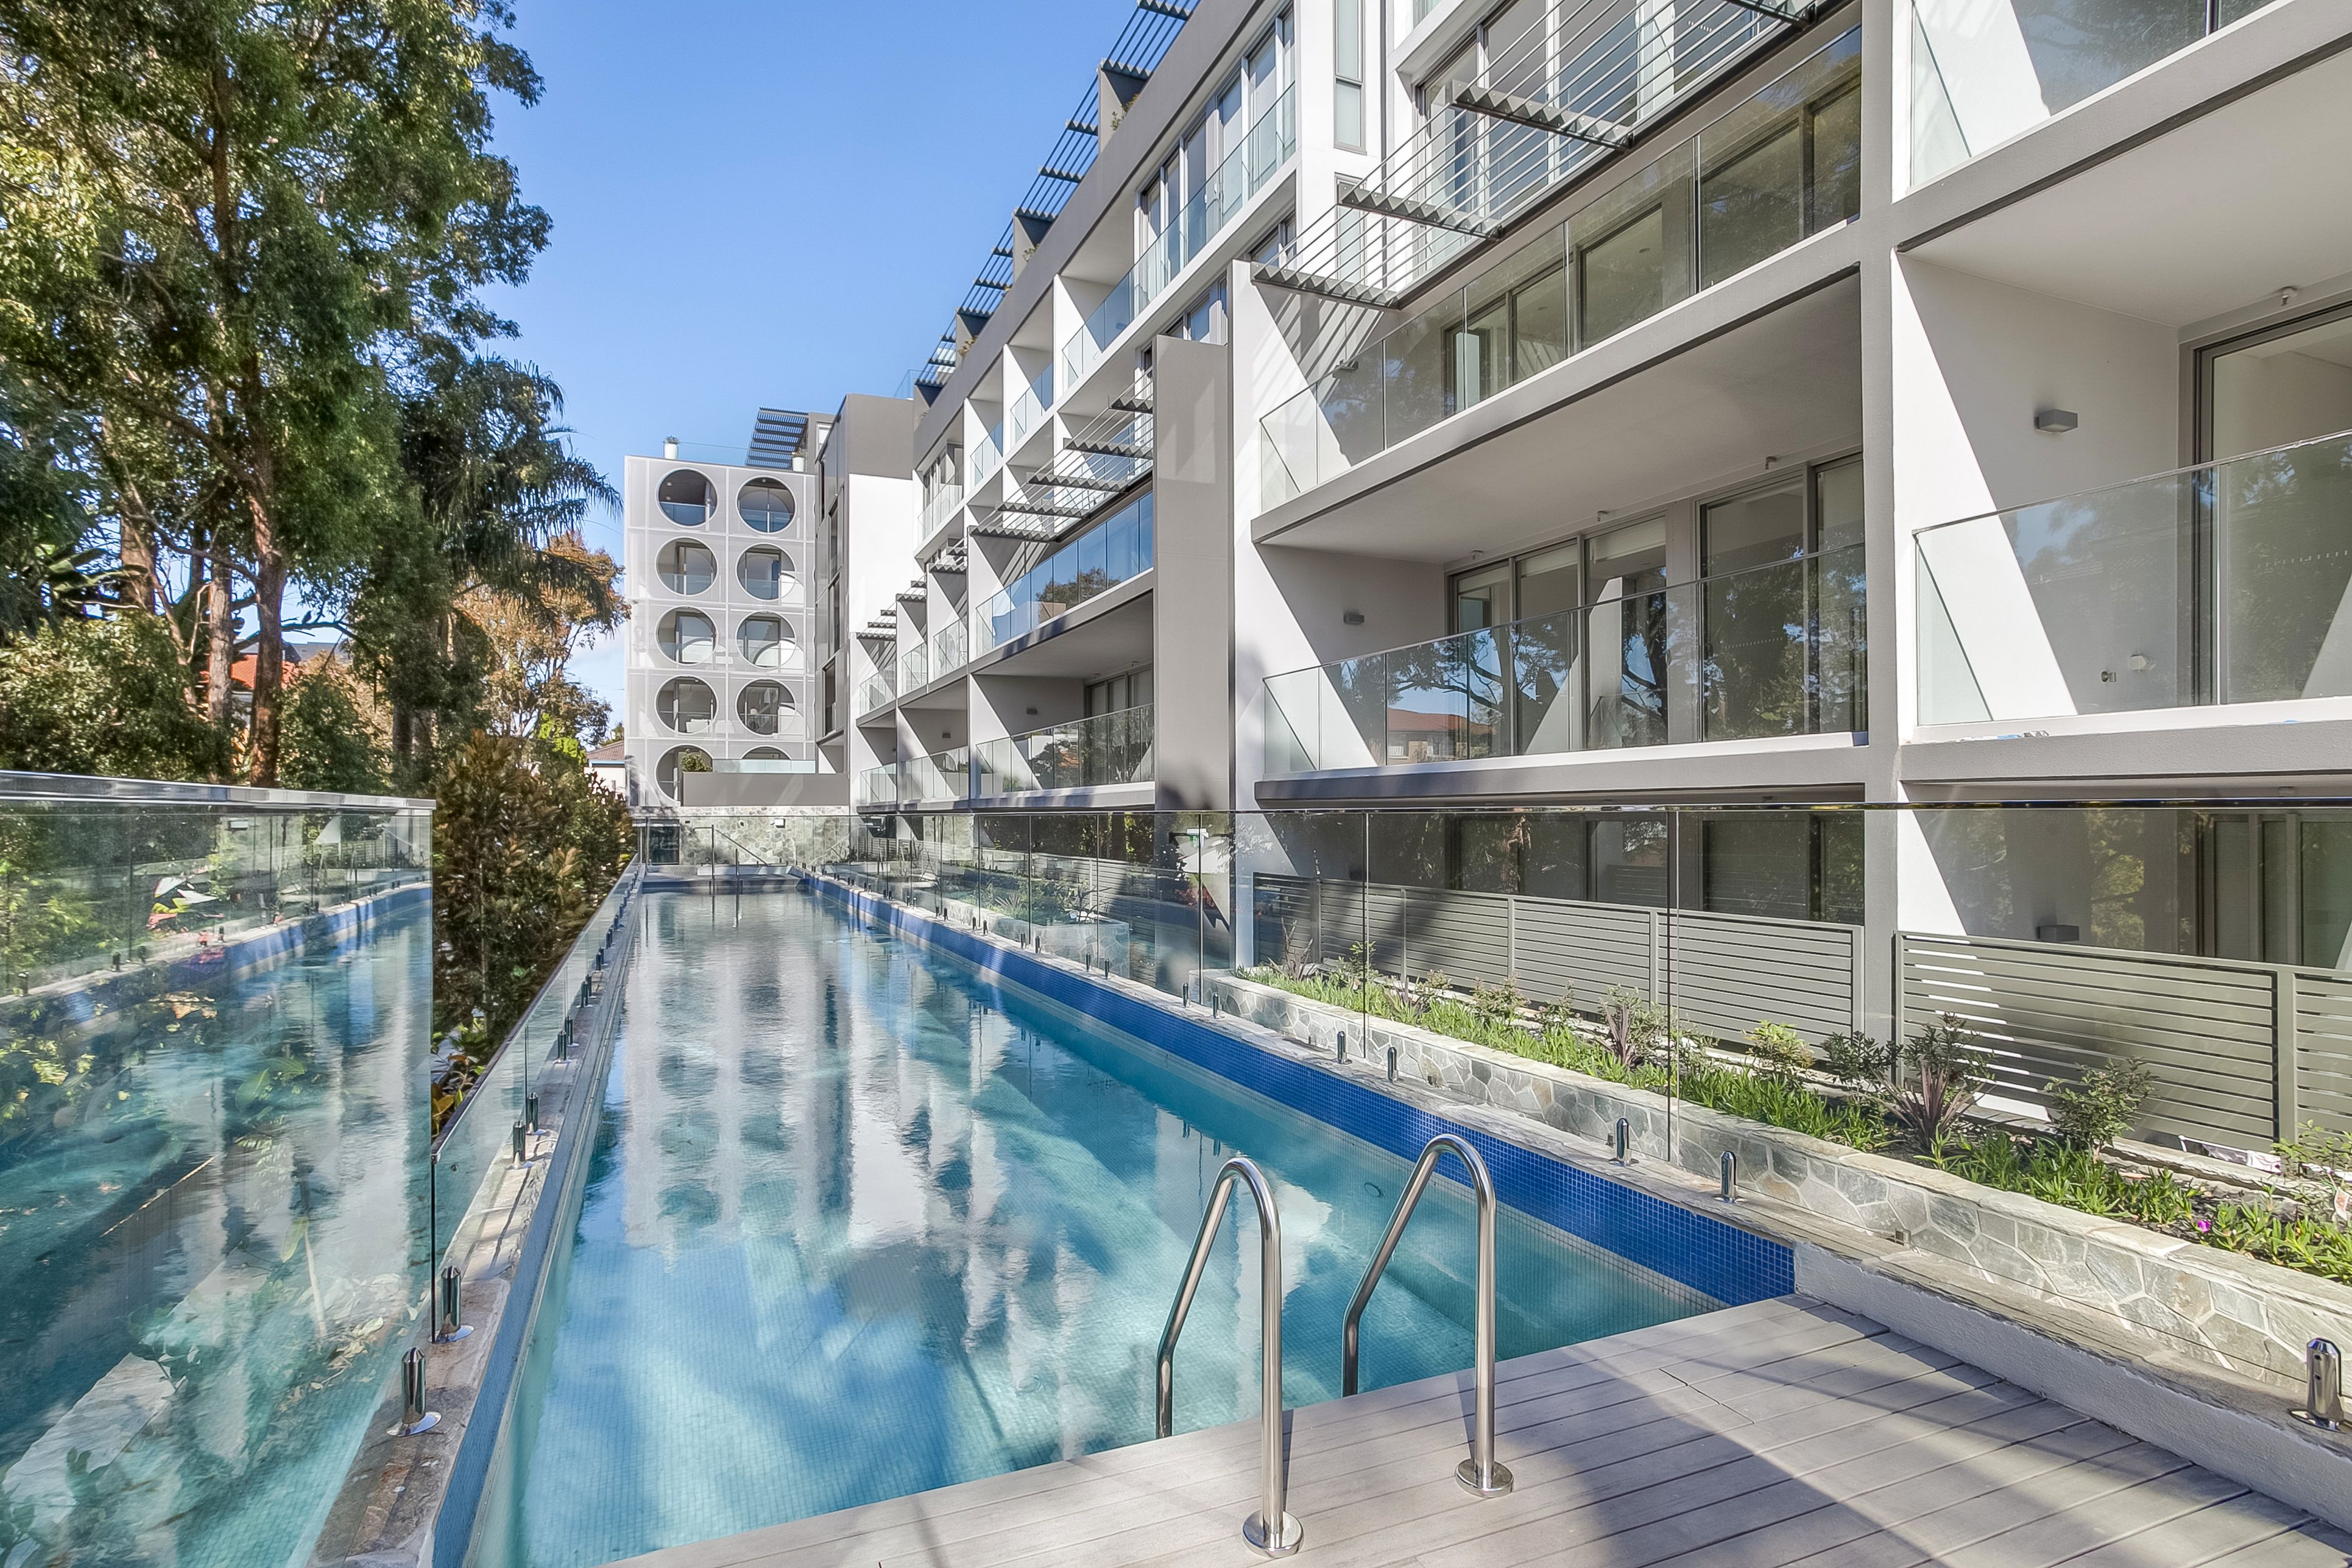 Penthouse Level - 3 bedroom apartment in the exclusive 88 Kensington